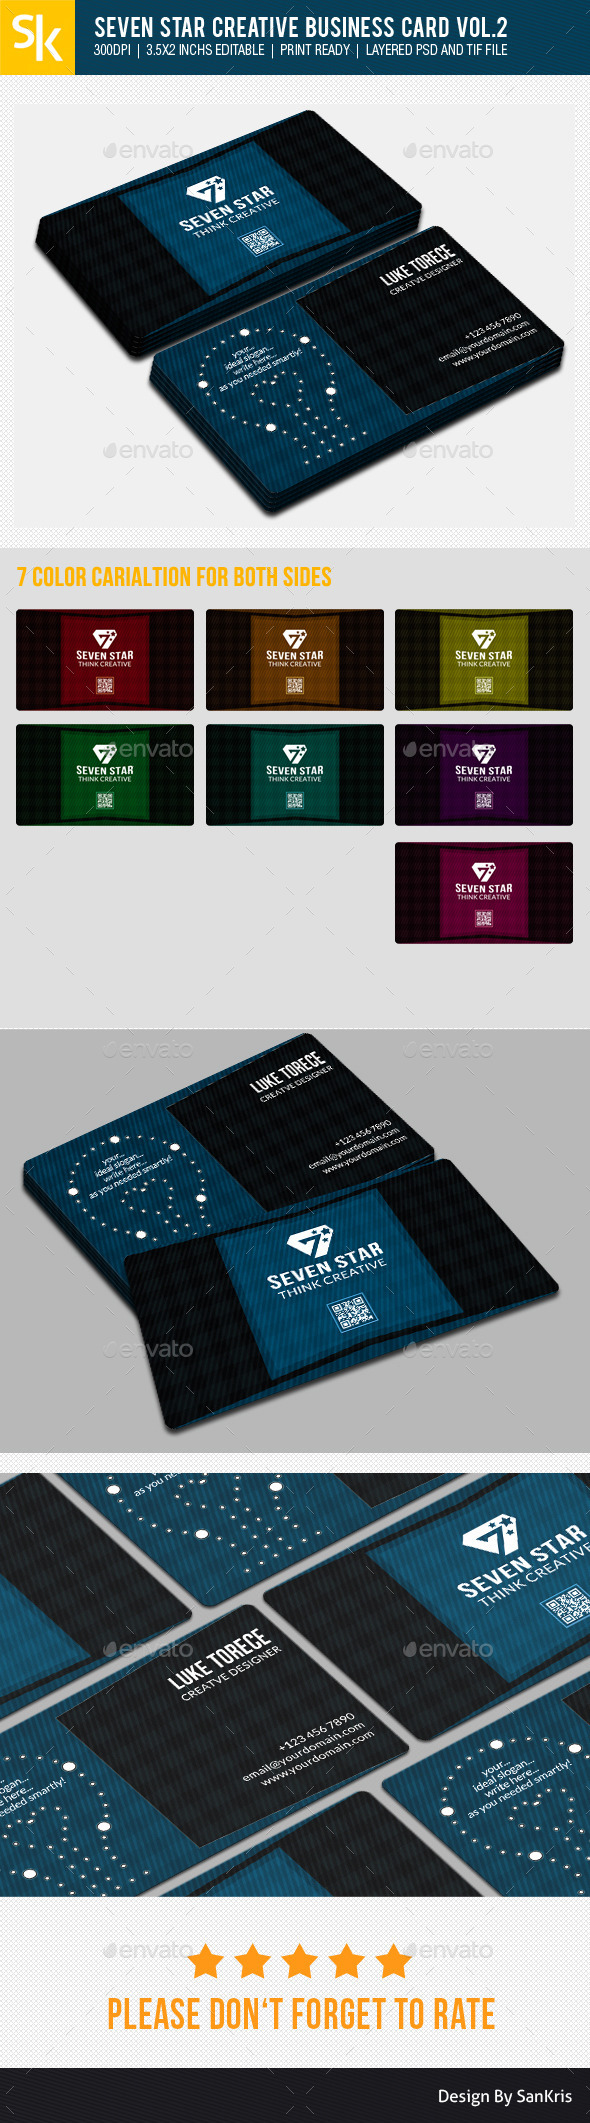 GraphicRiver Seven Star Creative Business Card Vol.2 10783538